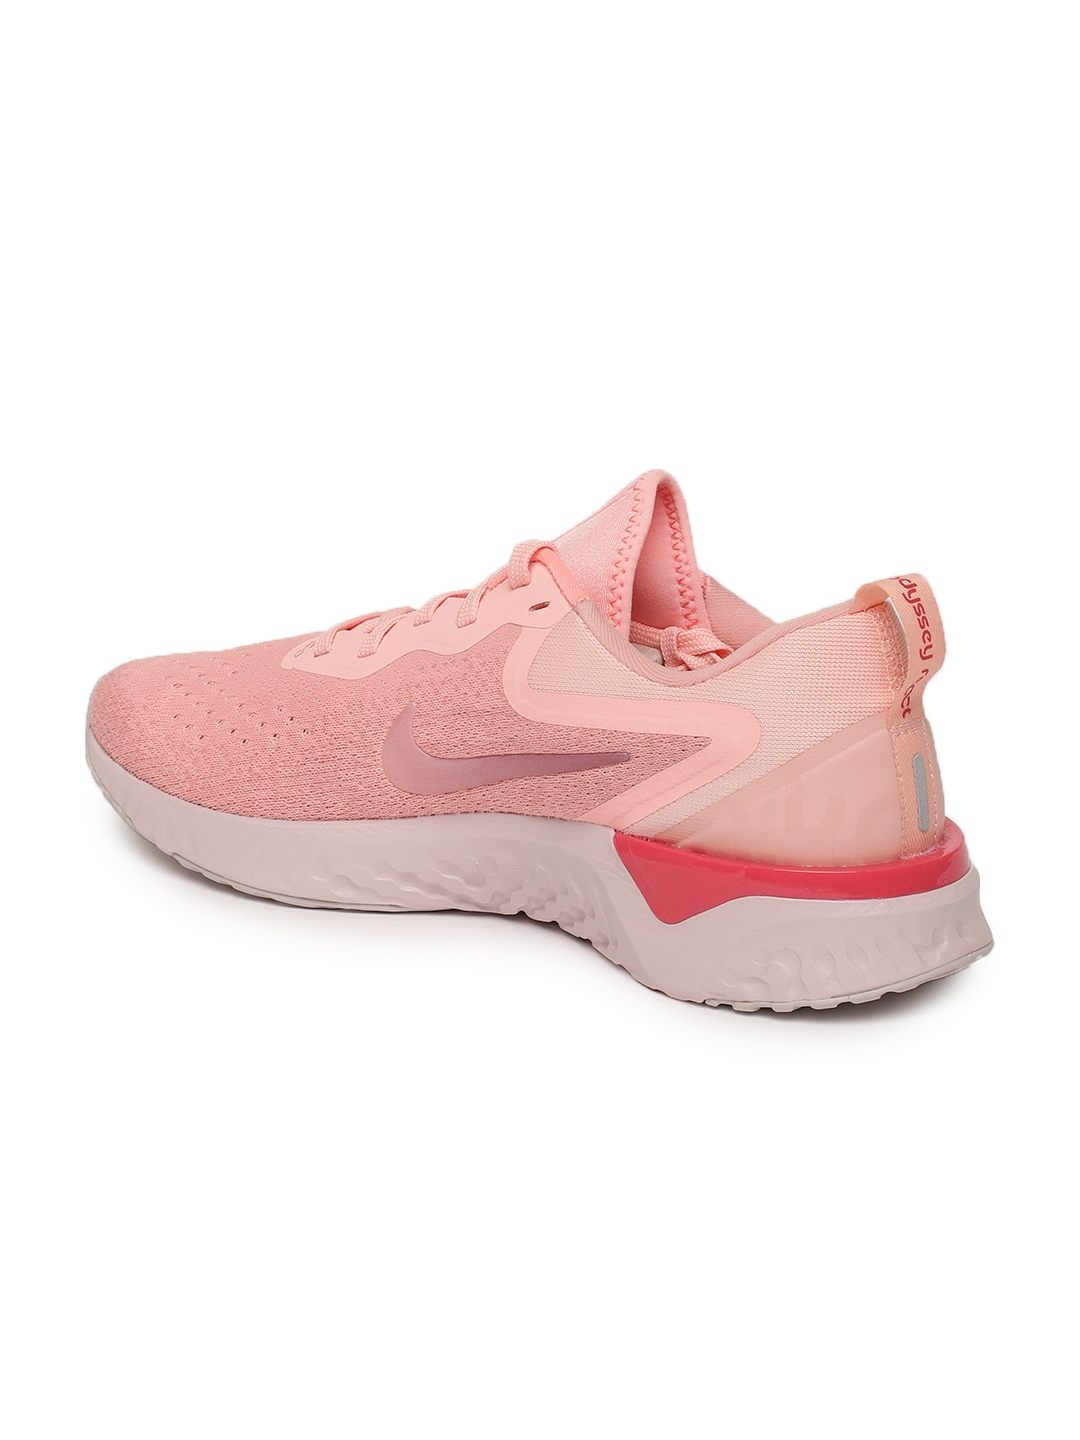 12615e596c3d7 Buy Nike Women Pink Odyssey React Running Shoes - Sports Shoes for ...